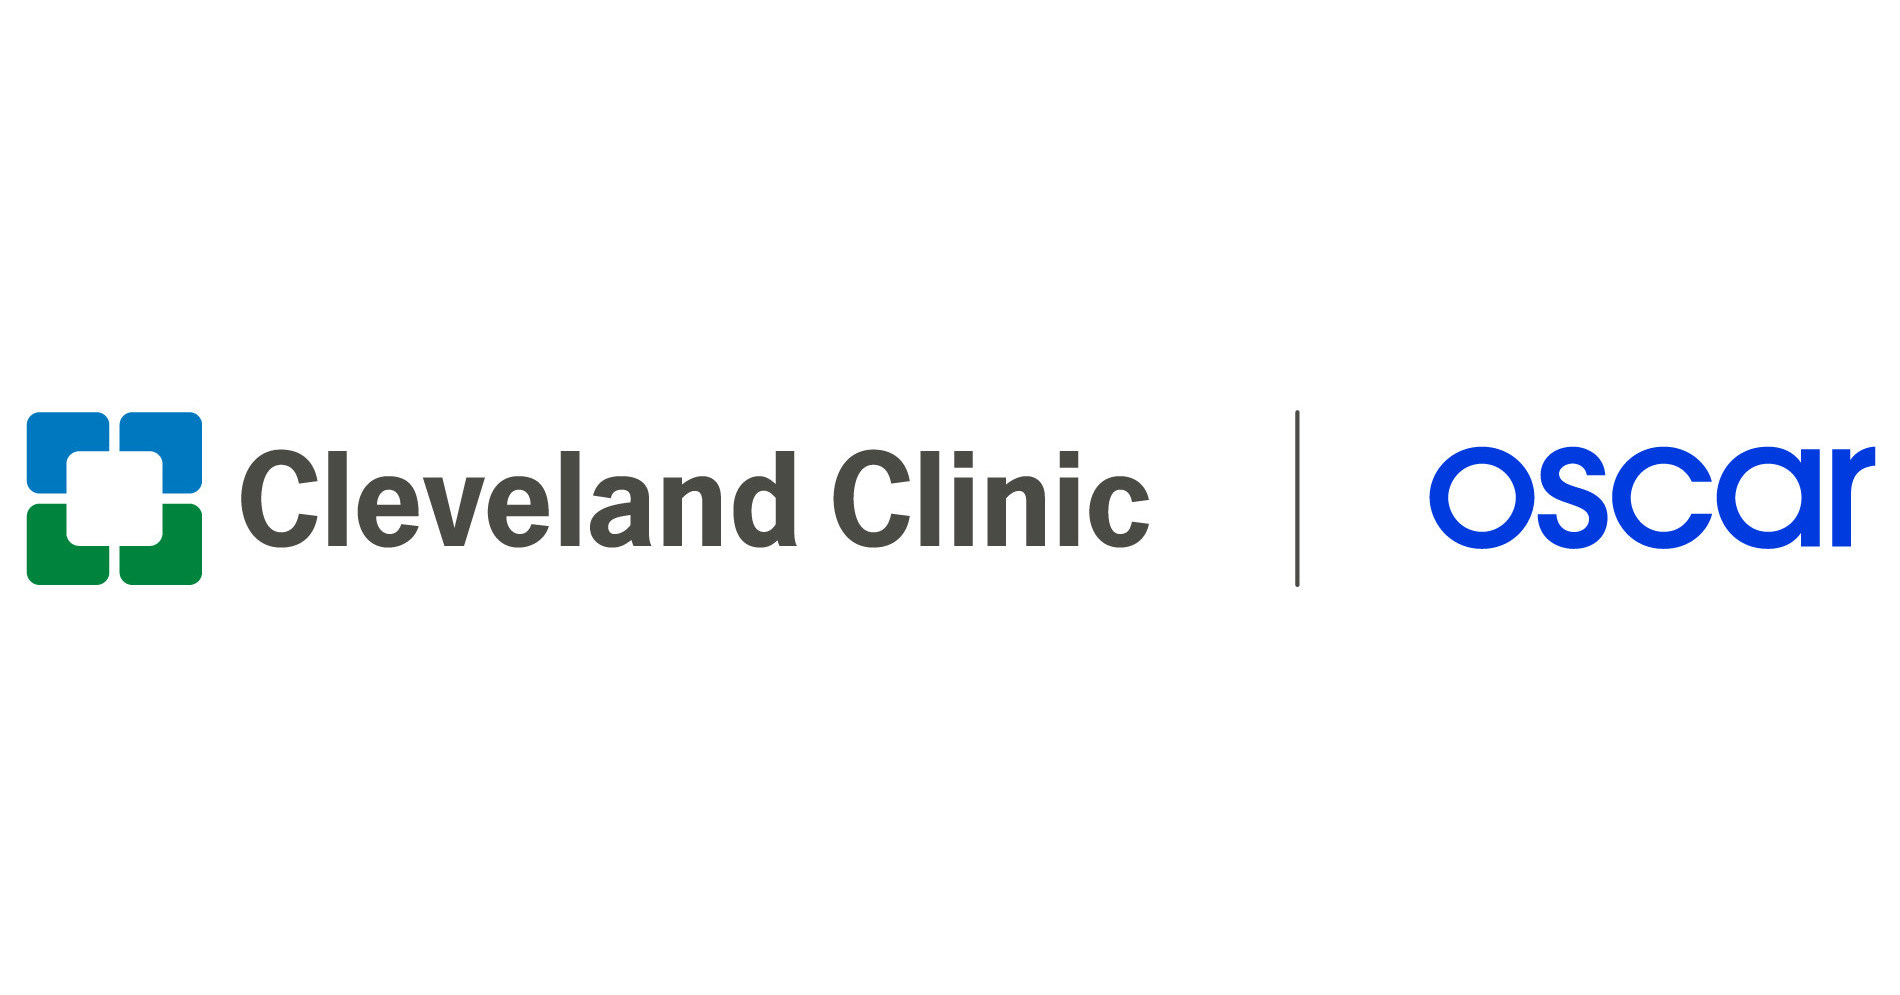 cleveland clinic Browse a complete list of cleveland clinic locations, complete with hours, services offered as well as directions on how to get there learn more today.